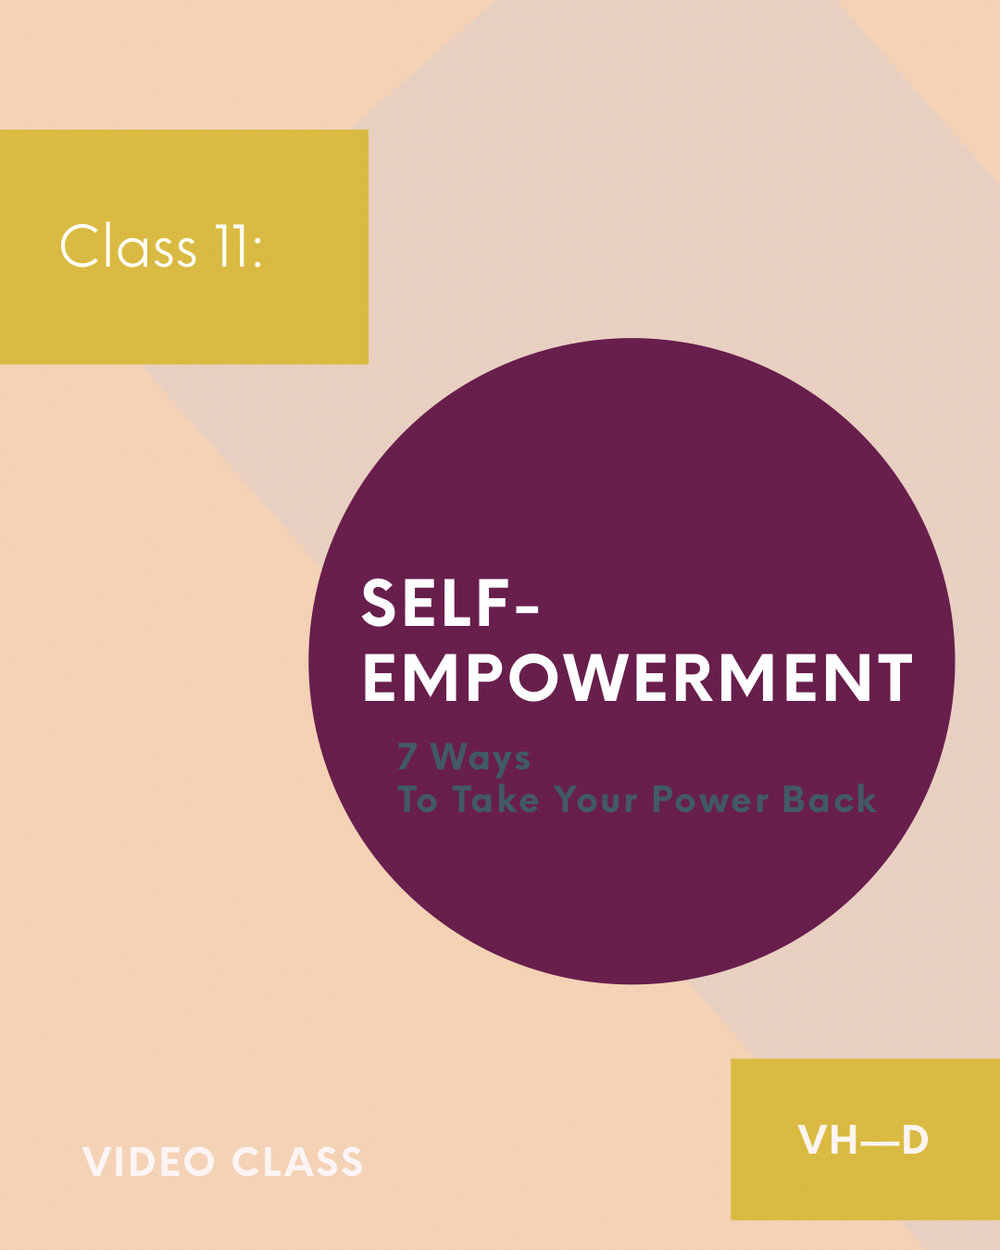 Self-Empowerment - 7 Essentials Ways to Take Your Power BackAre you living an empowered life?Dis-empowerment can cause negative thoughts, fears, blockages, doubts, pain, insecurities, circumstances, lower vibrations, and unhealthy subconscious-beliefs, to consume our lives, to keep us from living a fulfilling life, to keep us from reaching out higher potential, and from thriving in life; if we allow them to.In class 11, we'll cover 7 essentials ways to put Self-Empowerment into practice and full-effect. Let's thrive in, and through, life!$15